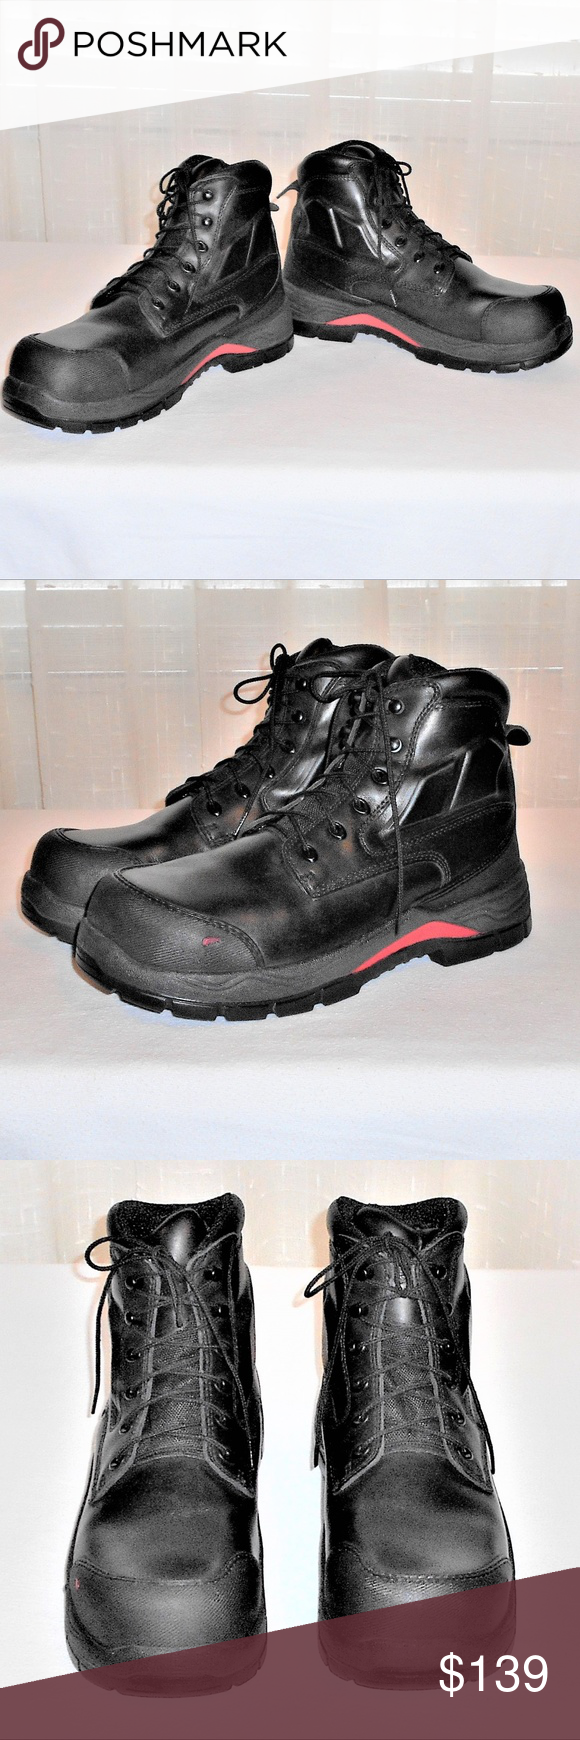 922821efc4c Red Wing 2407 King Toe ADC Safety Boot Men US 11 RED WING 2407 KING ...